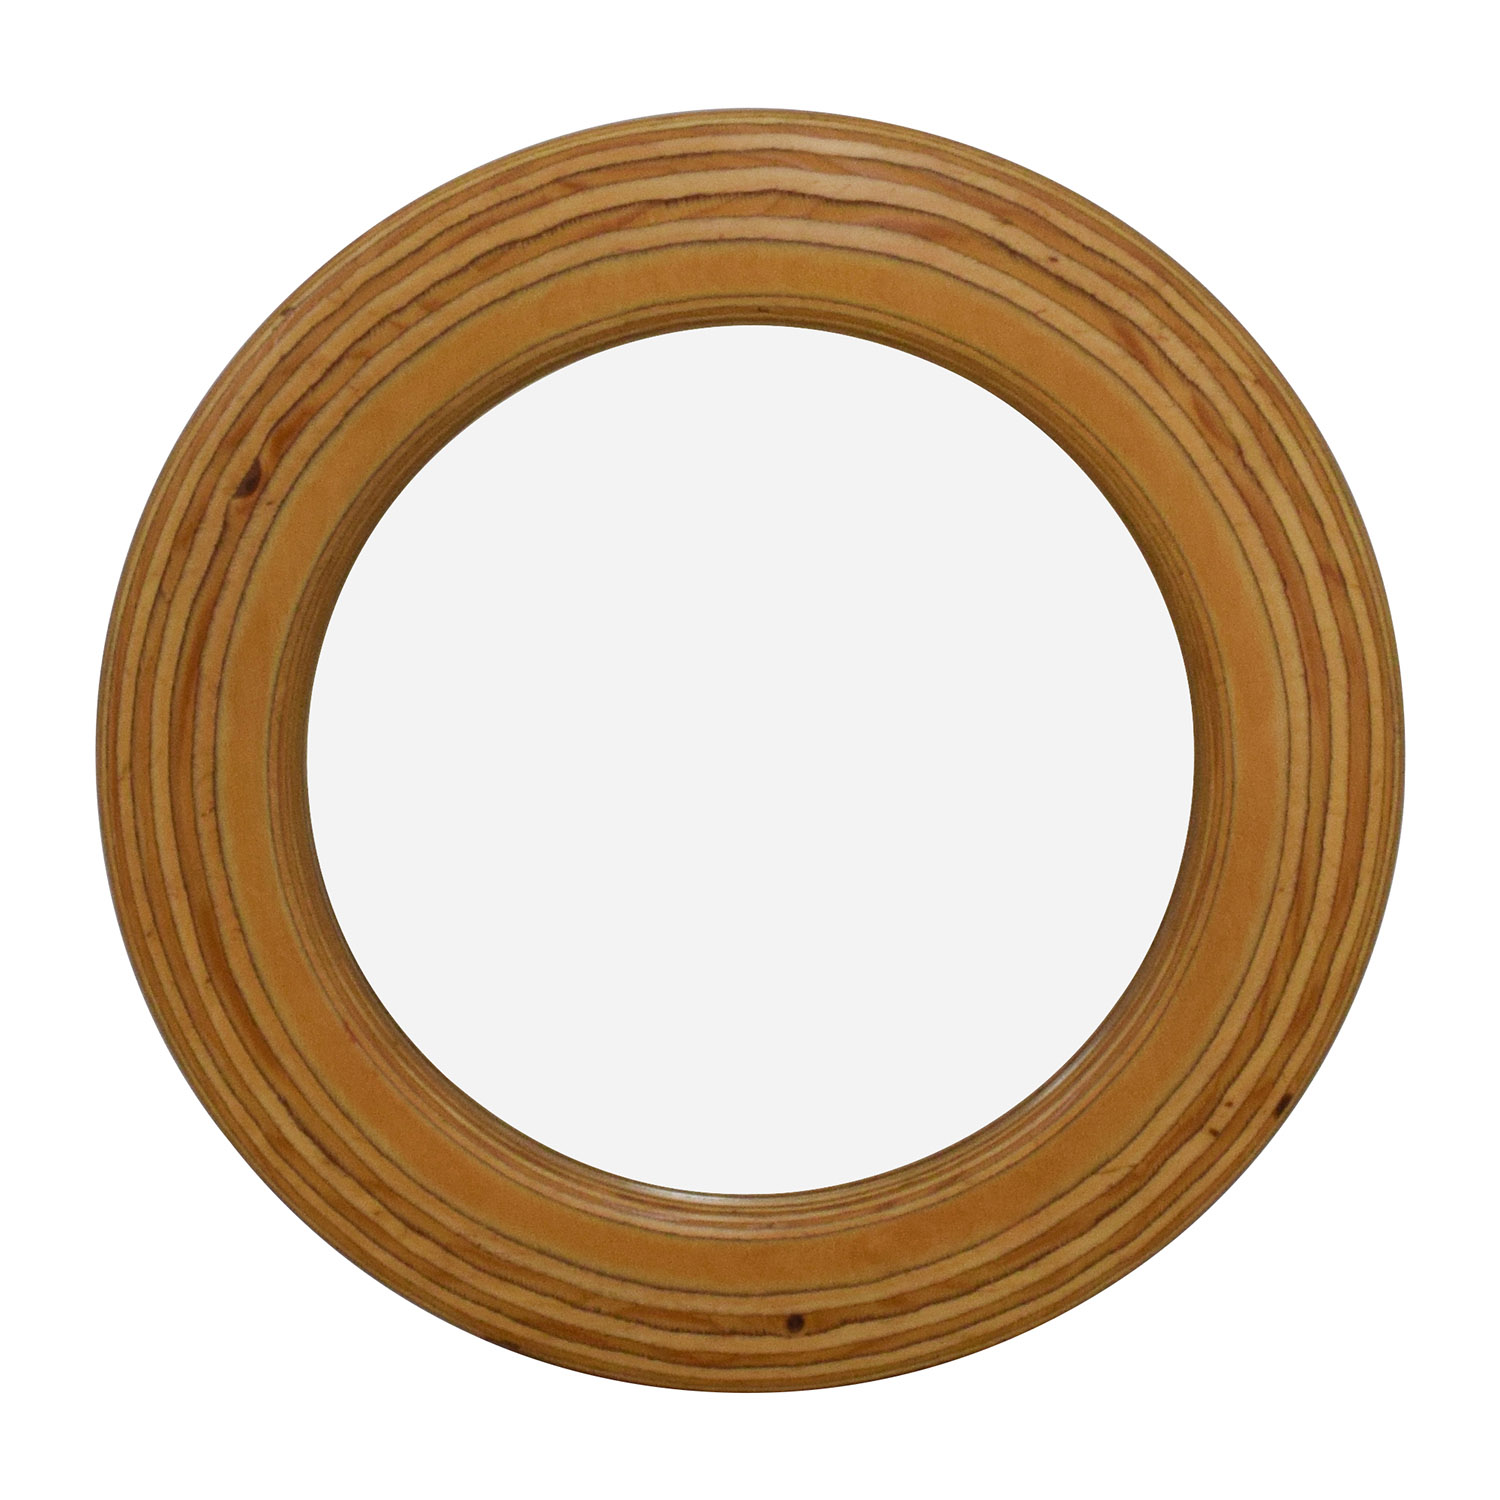 Round Mirrors For Sale Mirrors Used Mirrors For Sale